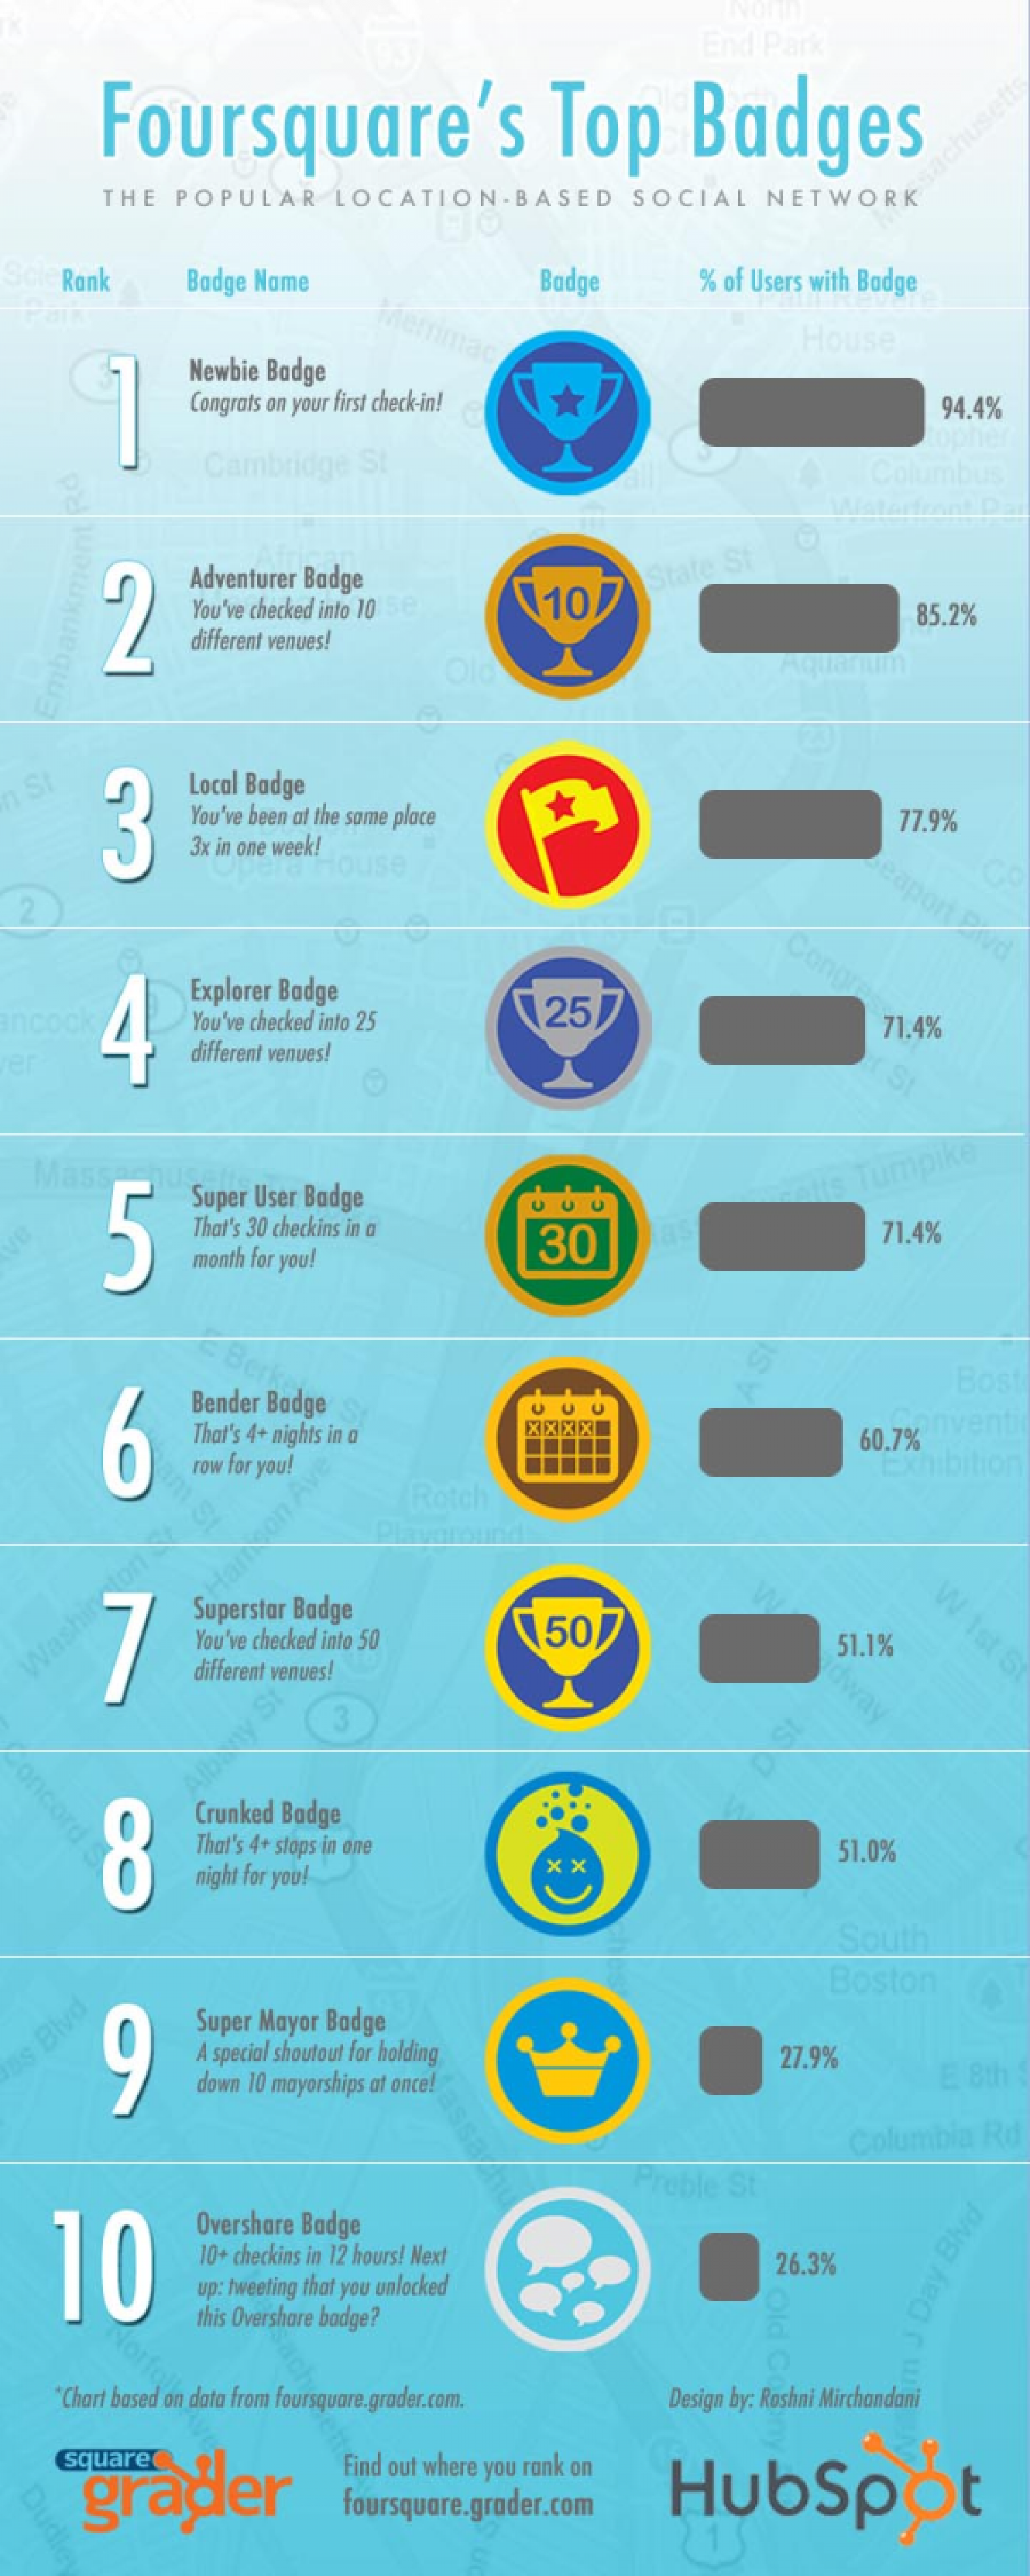 Top 10 Most Popular Foursquare Badges Infographic